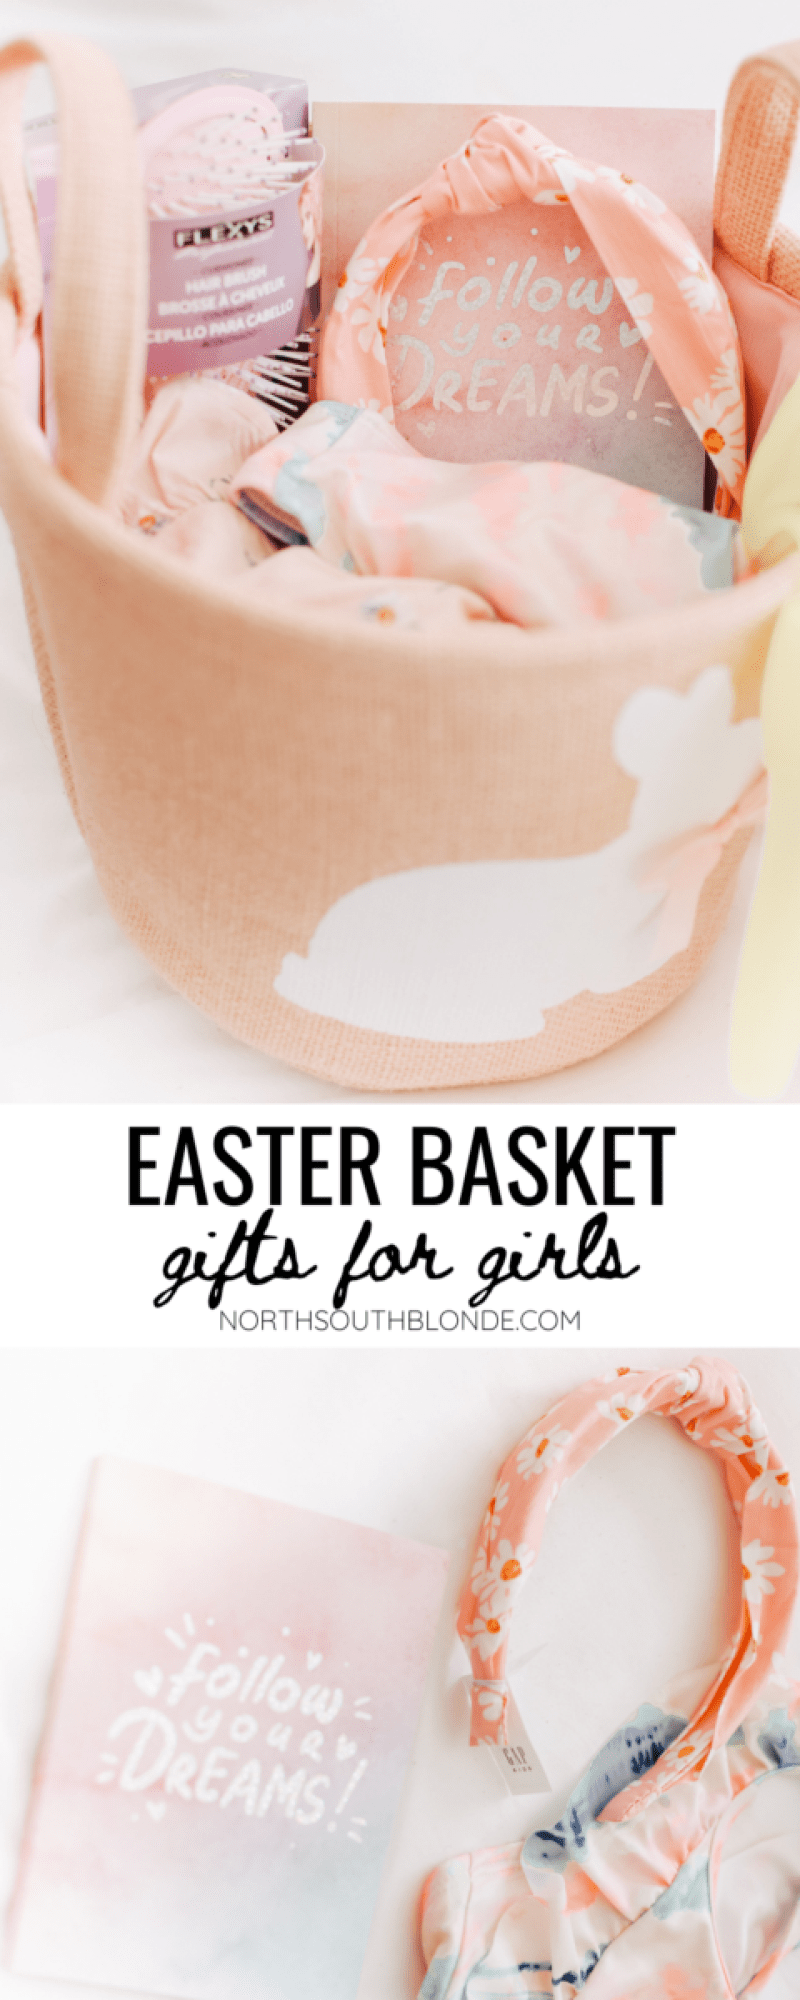 Easter basket gift ideas for little girls and older girls, including fun bright spring colours and warm weather essentials. Easter Goodie | No Toys | No Candy | No Sugar | Dollar Store Finds | Gap Kids | Gap Girls | Walmart | Spring | Outdoor Activities | Spring Dresses for Girls | Girls Style | Girls Fashion | Spring Must Haves | Easter Basket for Older Kids | Gift Basket Ideas |